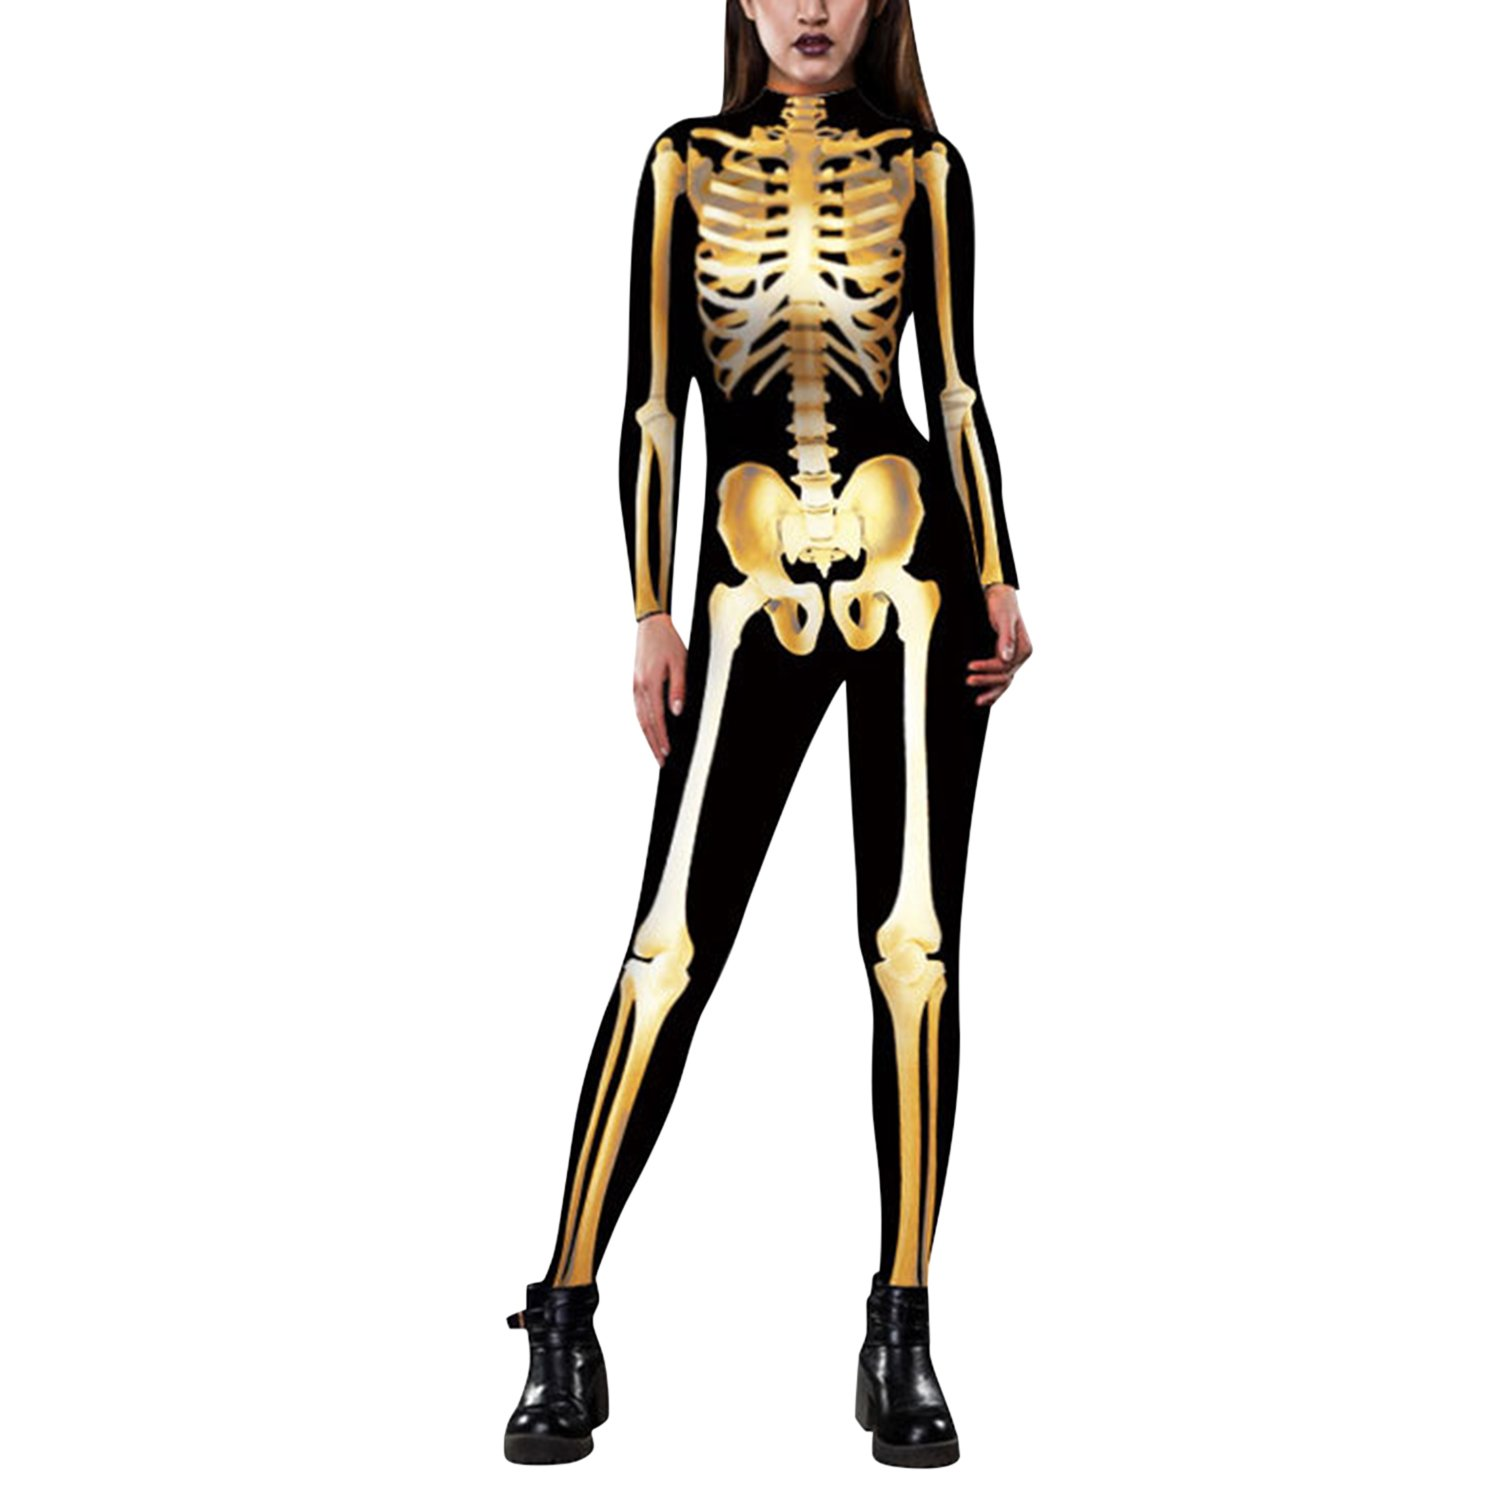 Lisli Womens Halloween Skeleton Print Catsuit Adult Onepiece Full Bodysuit Costume